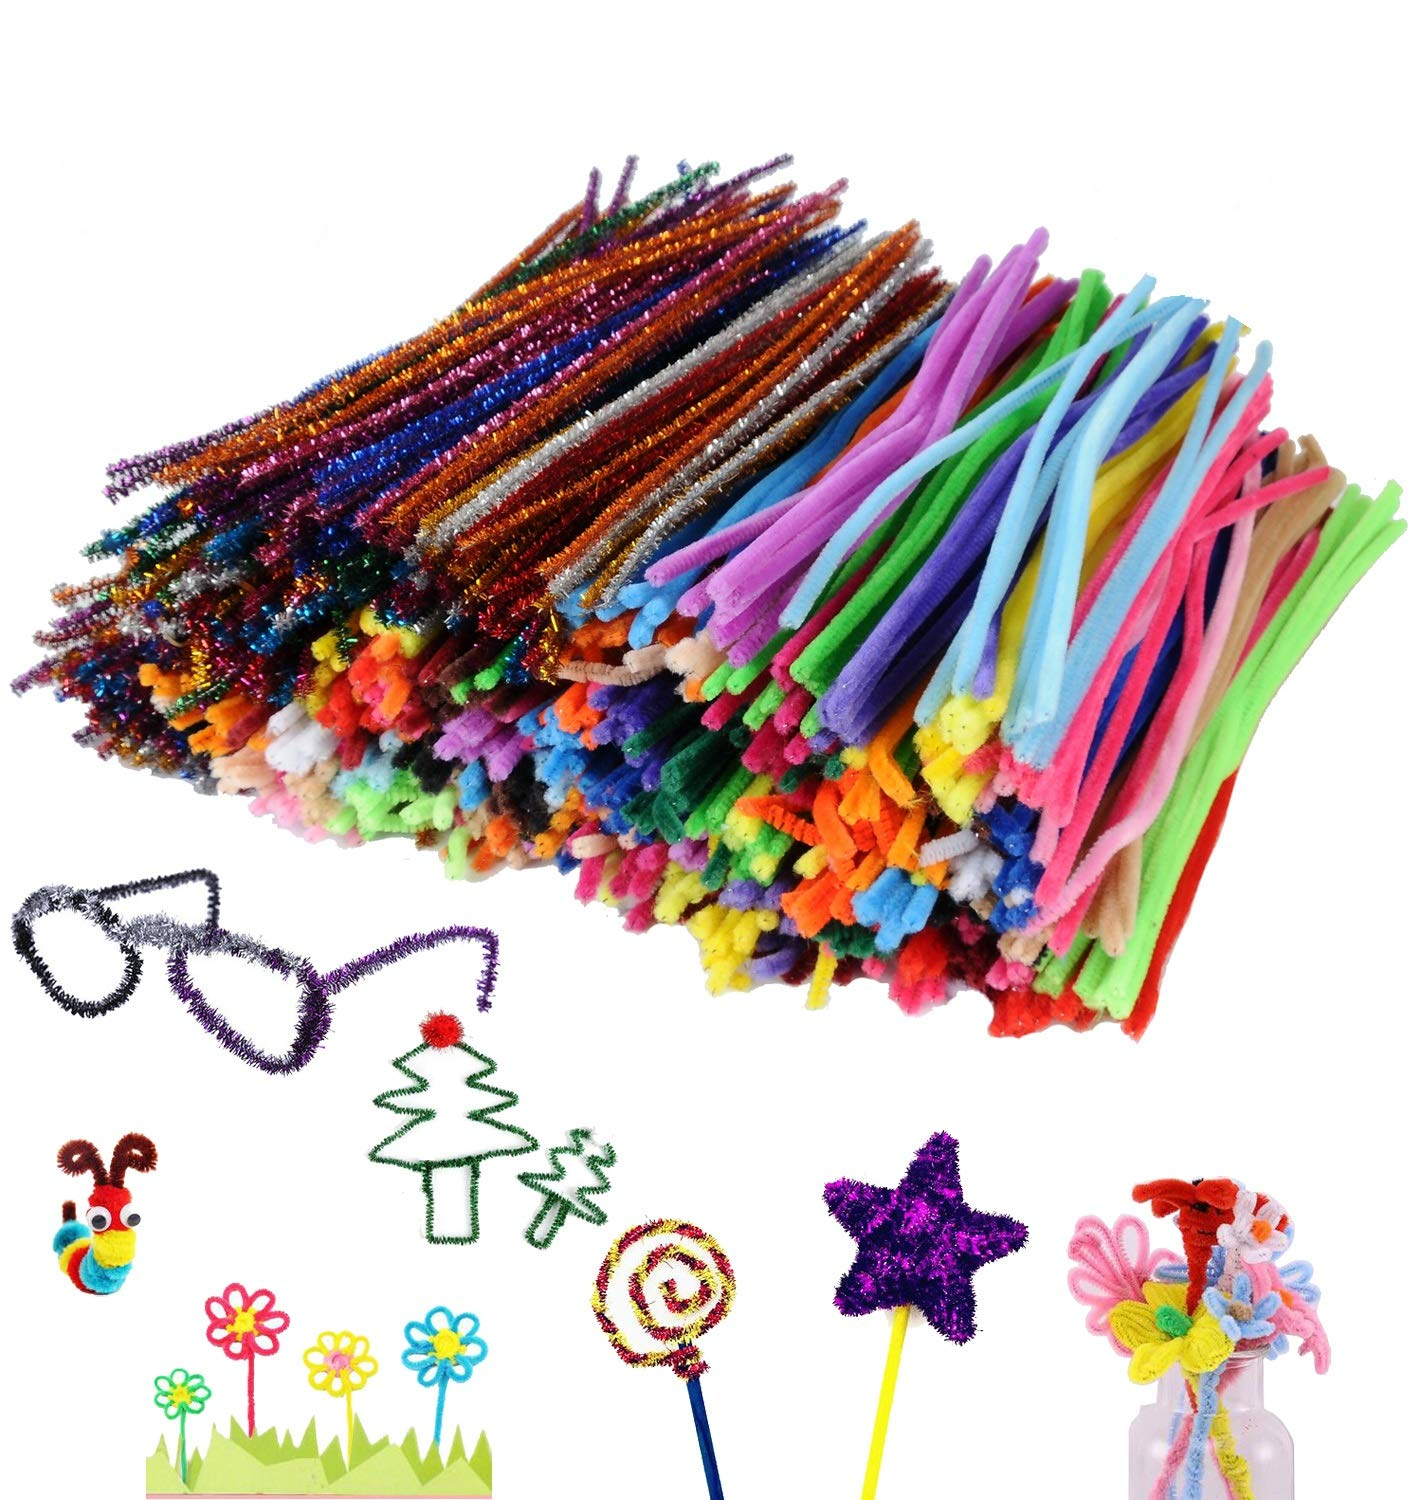 YUEAON 1020 Pieces in 34 Colors Pipe Cleaners Value Pack of Multicolor Chenille Stems for DIY, Art Creative Crafts Decorations (6 mm x 12 inch)